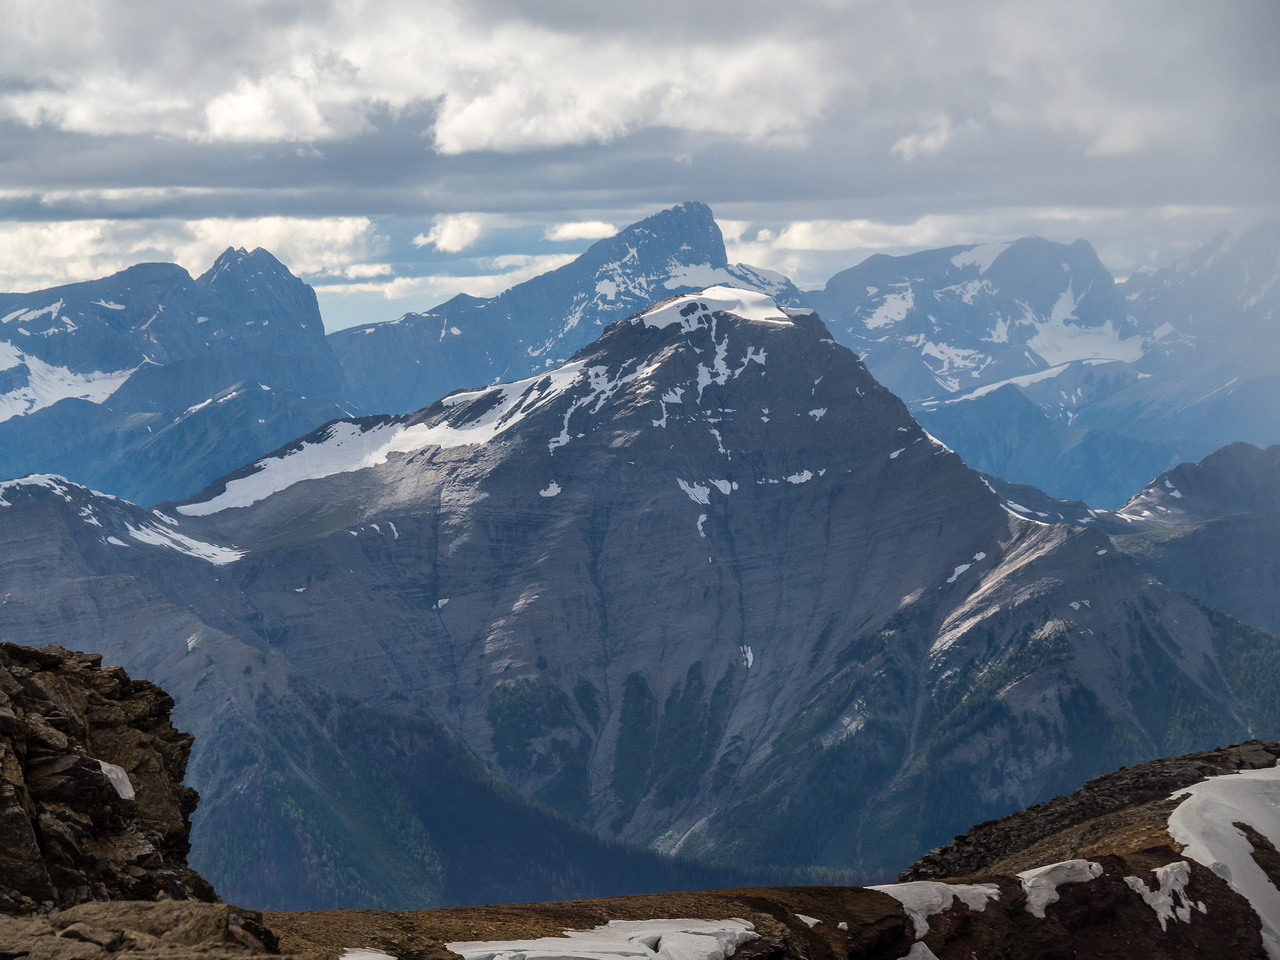 Mount Shanks with Floe Peak in the distance.